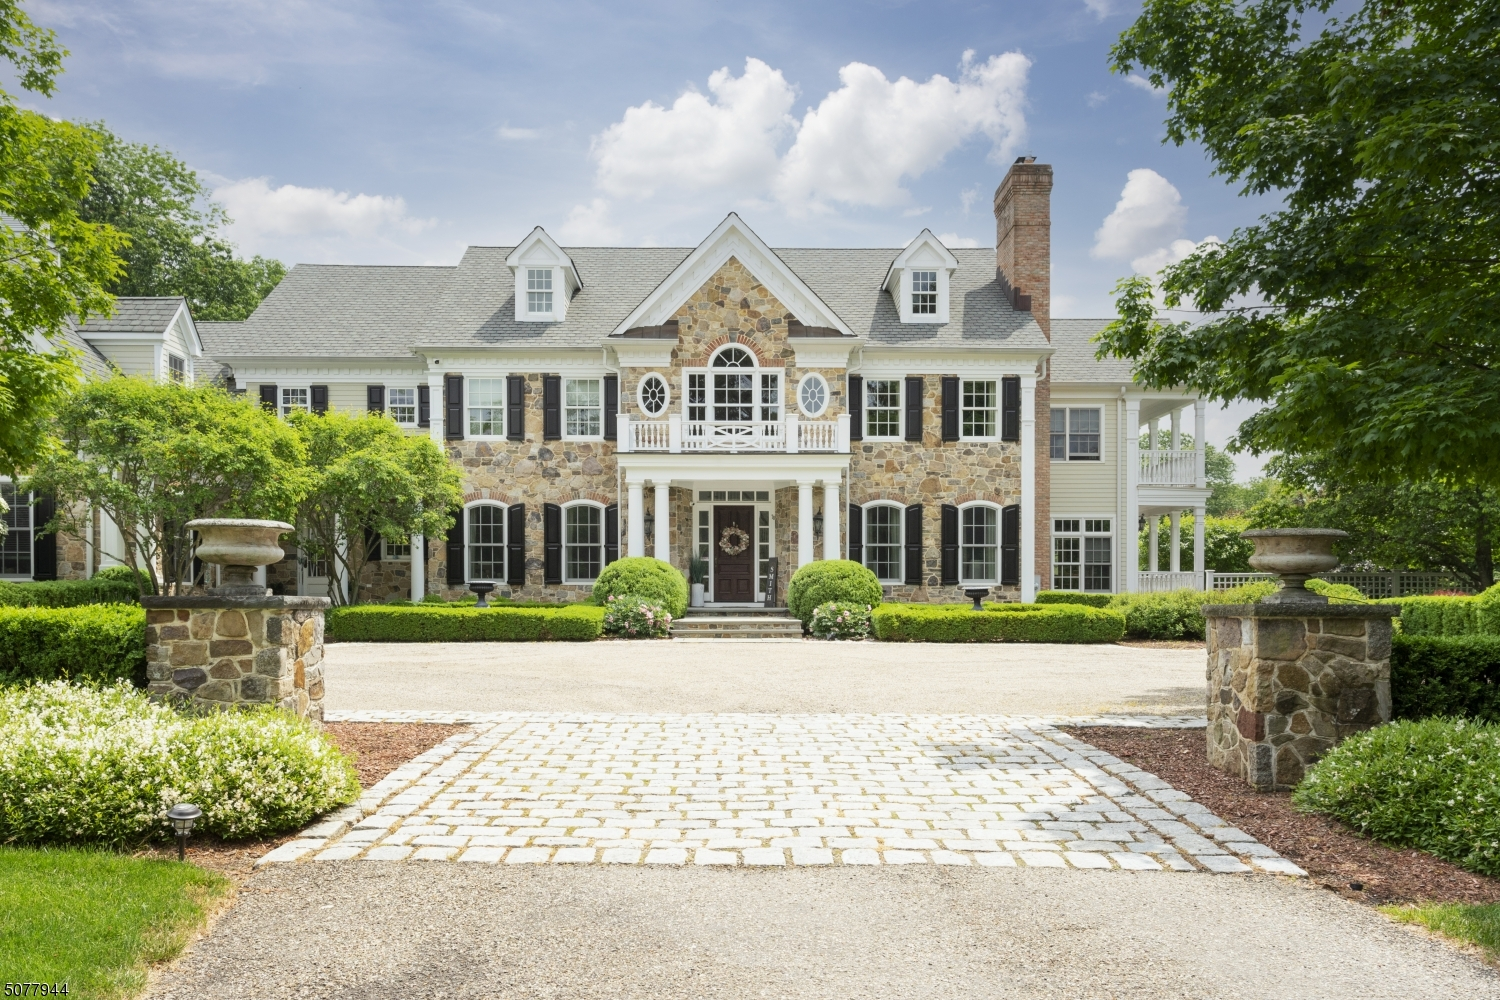 Absolute perfection on ~4 acres w/7Brs 7.5 baths 2 miles from NICHE 2021 top school in NJ. Enter multi-floor foyer w/winding stairs & FLR/FDR on either side and a phenomenal custom kitchen Enjoy morning coffee at XL granite island or breakfast area w/turret ceilings looking onto 1 of 2 backyard patios. Step down into giant FR w/FP, step up to wood wet bar. On left is coffered ceiling mahogany office great for all day zoom mtgs.  Past bar is 1 of 2 wrap around covered sunroomsTake 1 of 2 stairs to Primary BR w/multiple WICs, XL FR & vanity sitting areas. Admire the manicured backyard fr your breathtaking bath. There s also 4 lg ensuite BRsFin basement has full kit, 2 wine cellars, media rm, gym & has private entrance making it perfect space to entertain or private mother/daughterMAKE APP TODAY